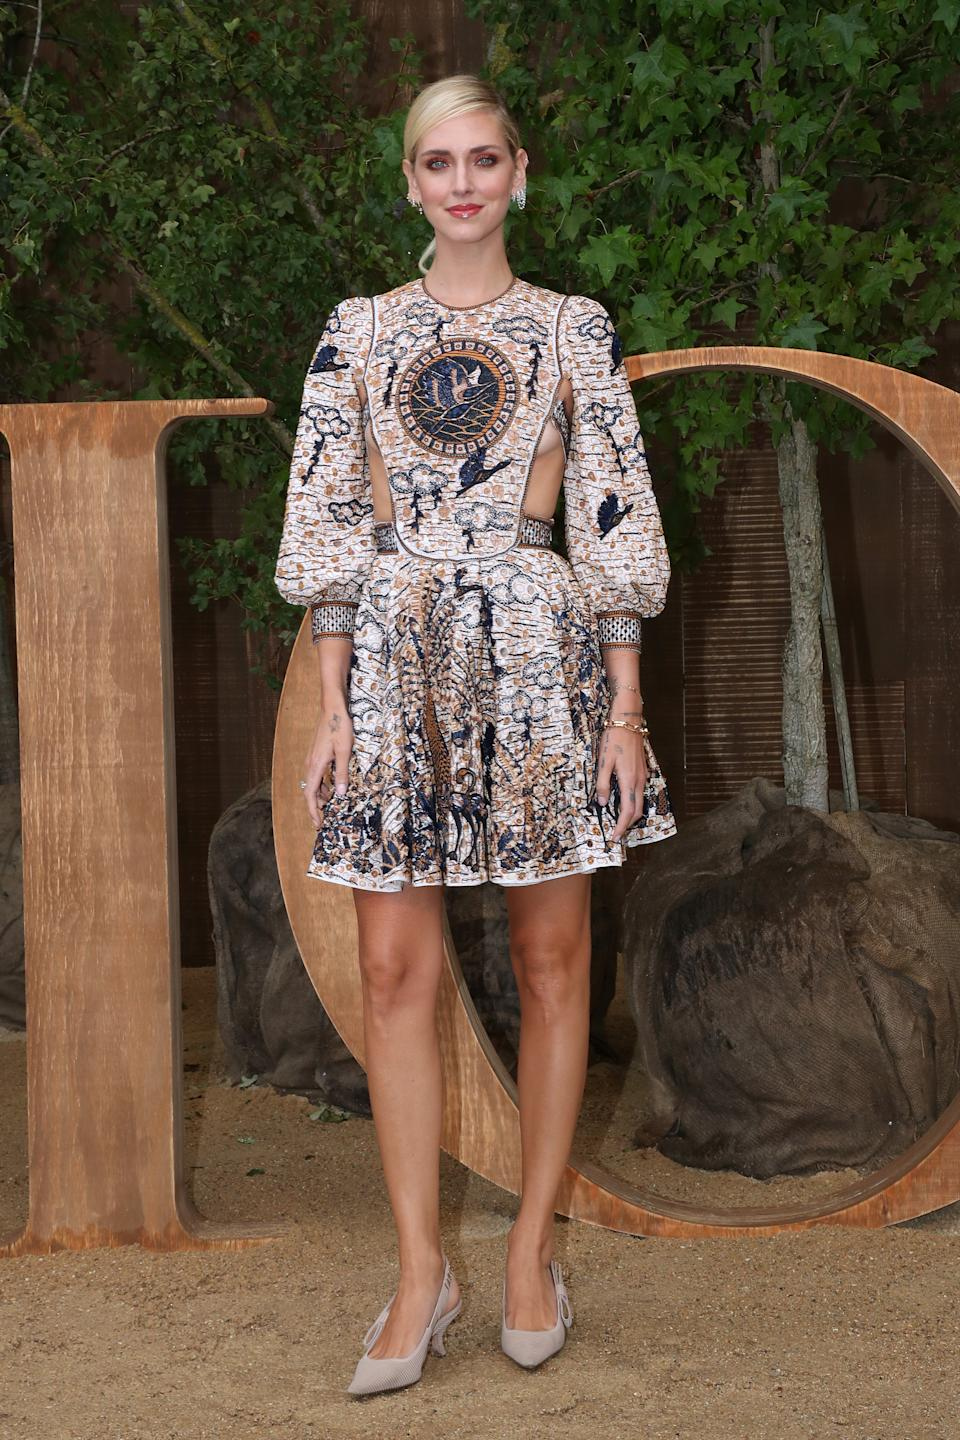 PARIS, FRANCE - SEPTEMBER 24: Chiara Ferragni attends the Christian Dior Womenswear Spring/Summer 2020 show as part of Paris Fashion Week on September 24, 2019 in Paris, France. (Photo by Bertrand Rindoff Petroff/Getty Images)